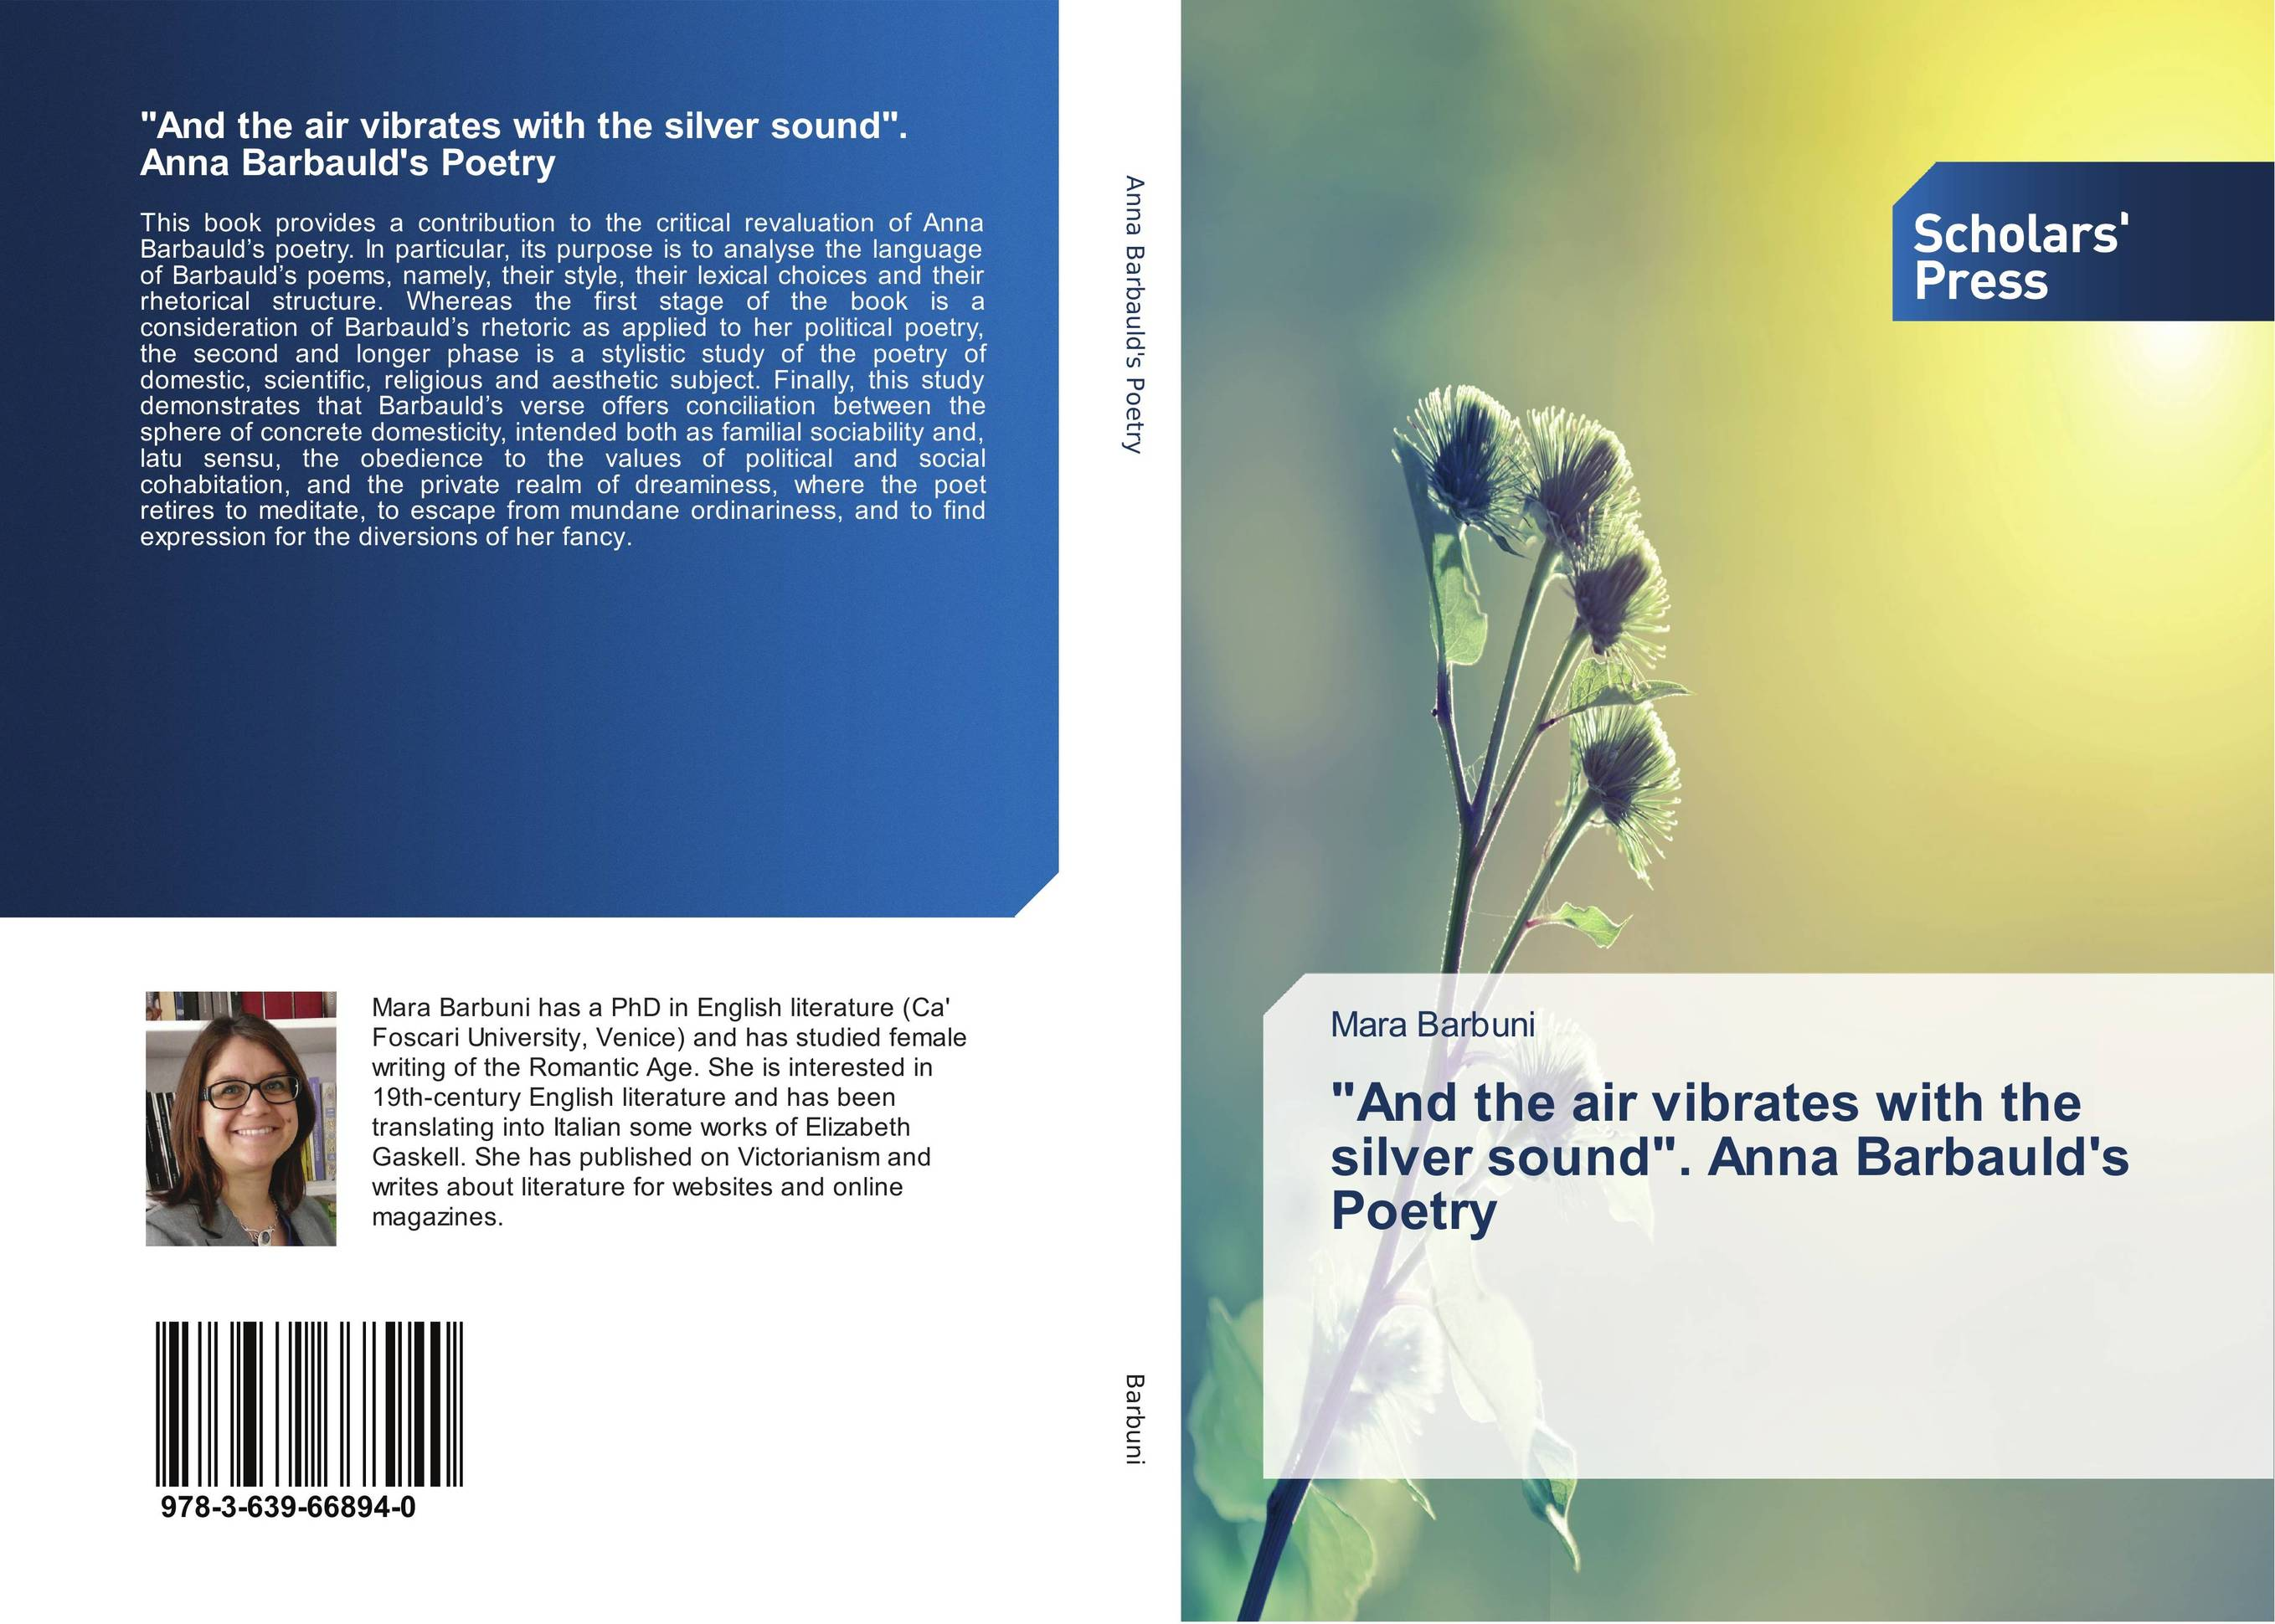 And the air vibrates with the silver sound. Anna Barbauld's Poetry social function of folk poetry